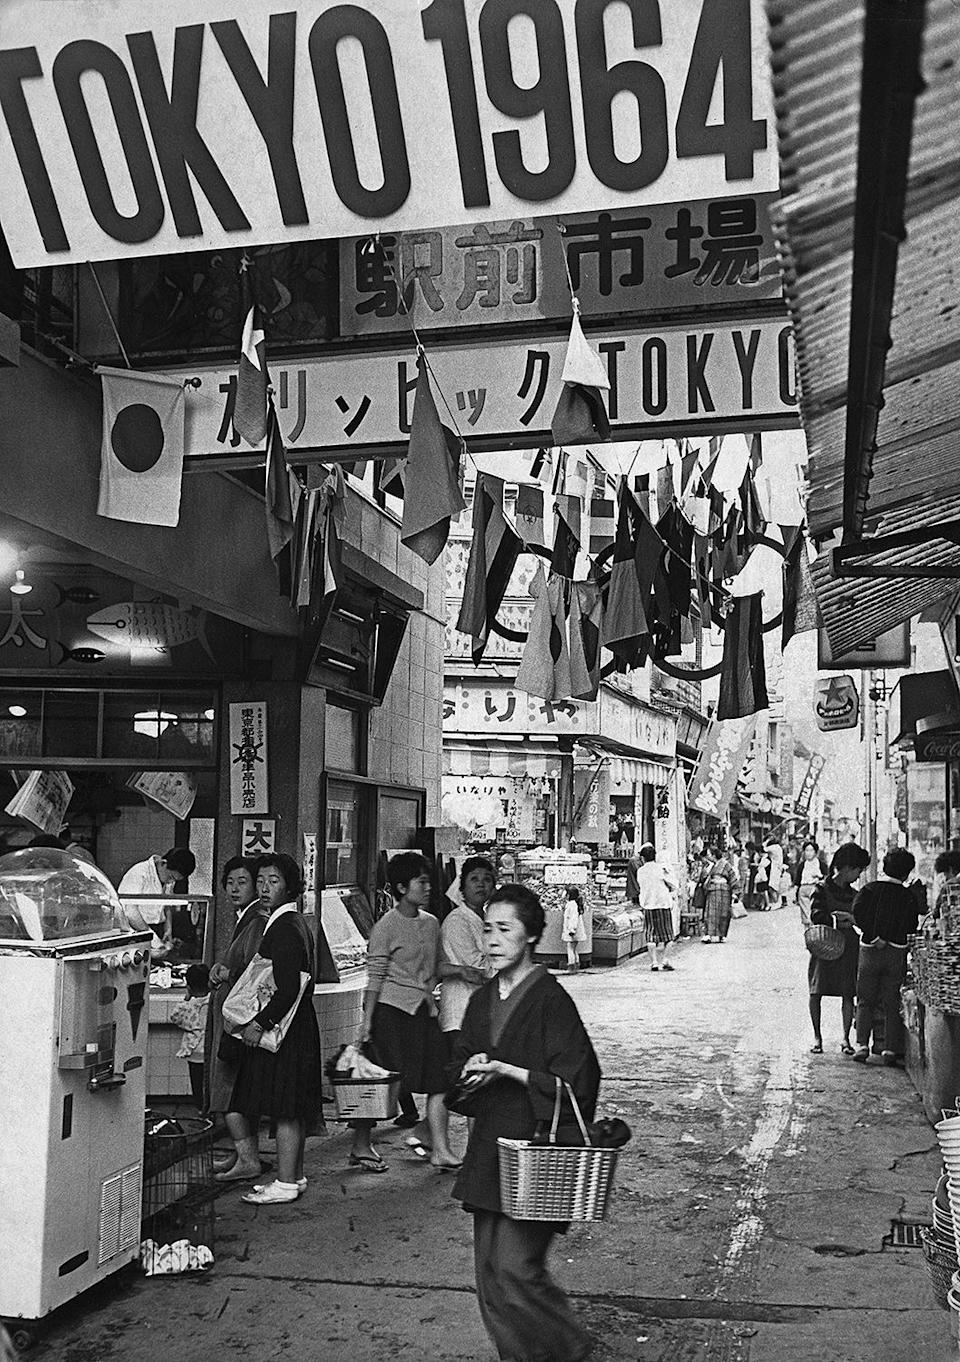 <p>The city and its residents are seen preparing for the 1964 Olympics in Tokyo.</p>